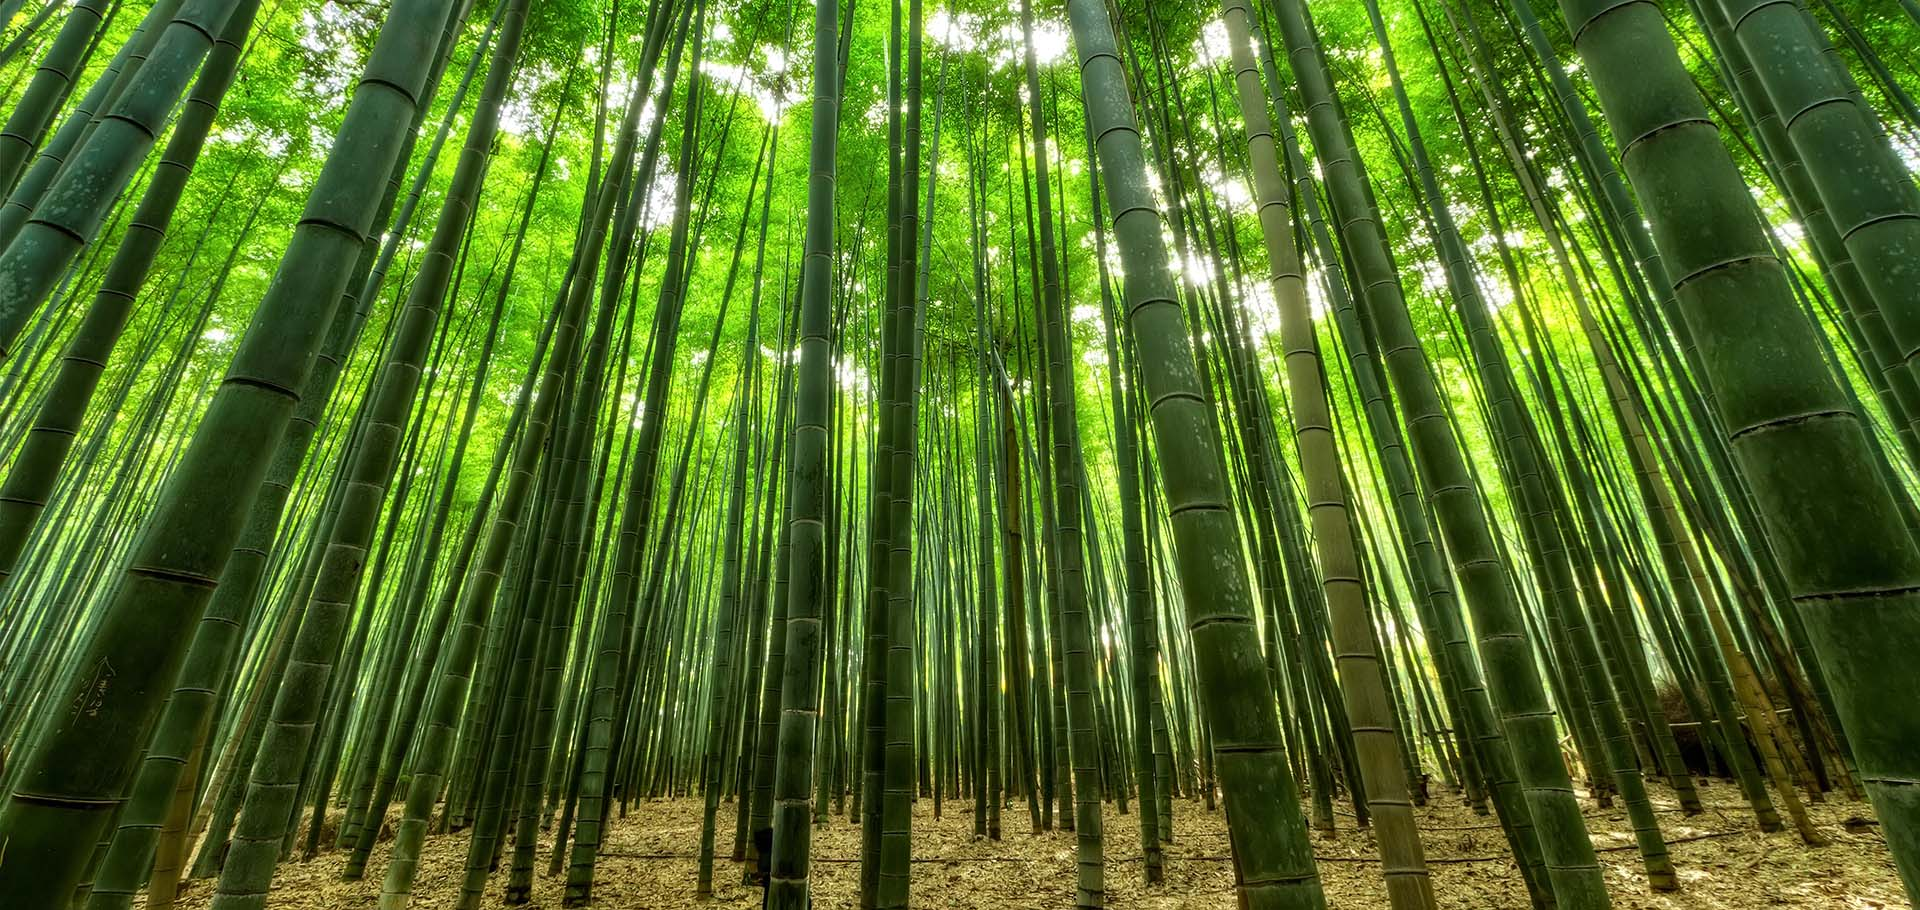 Resources for bamboo plants & products